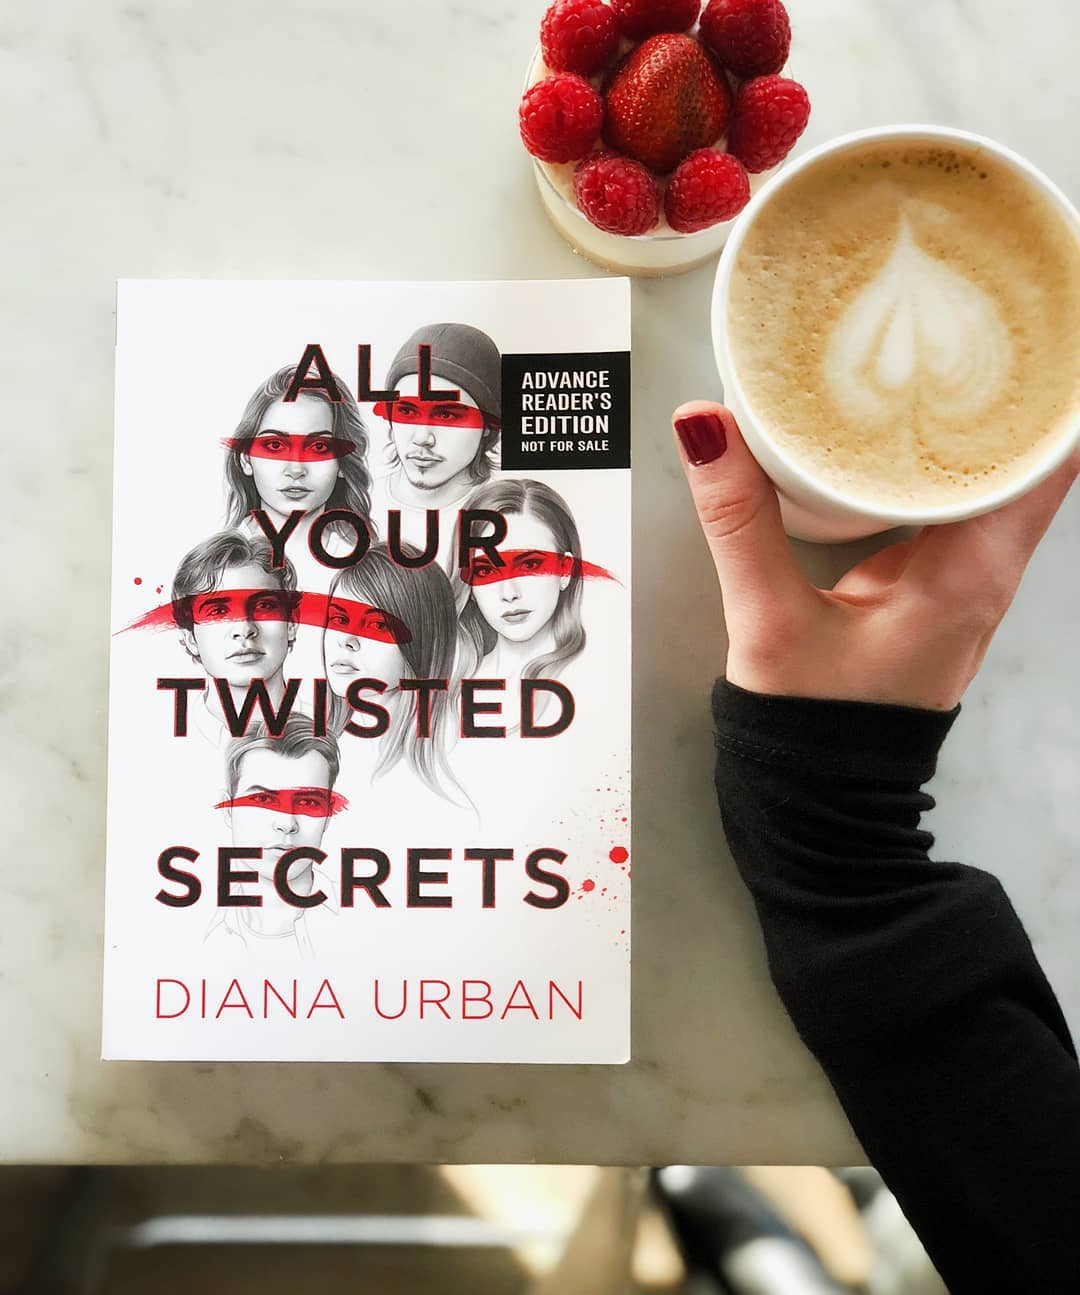 All Your Twisted Secrets with Coffee and Raspberries